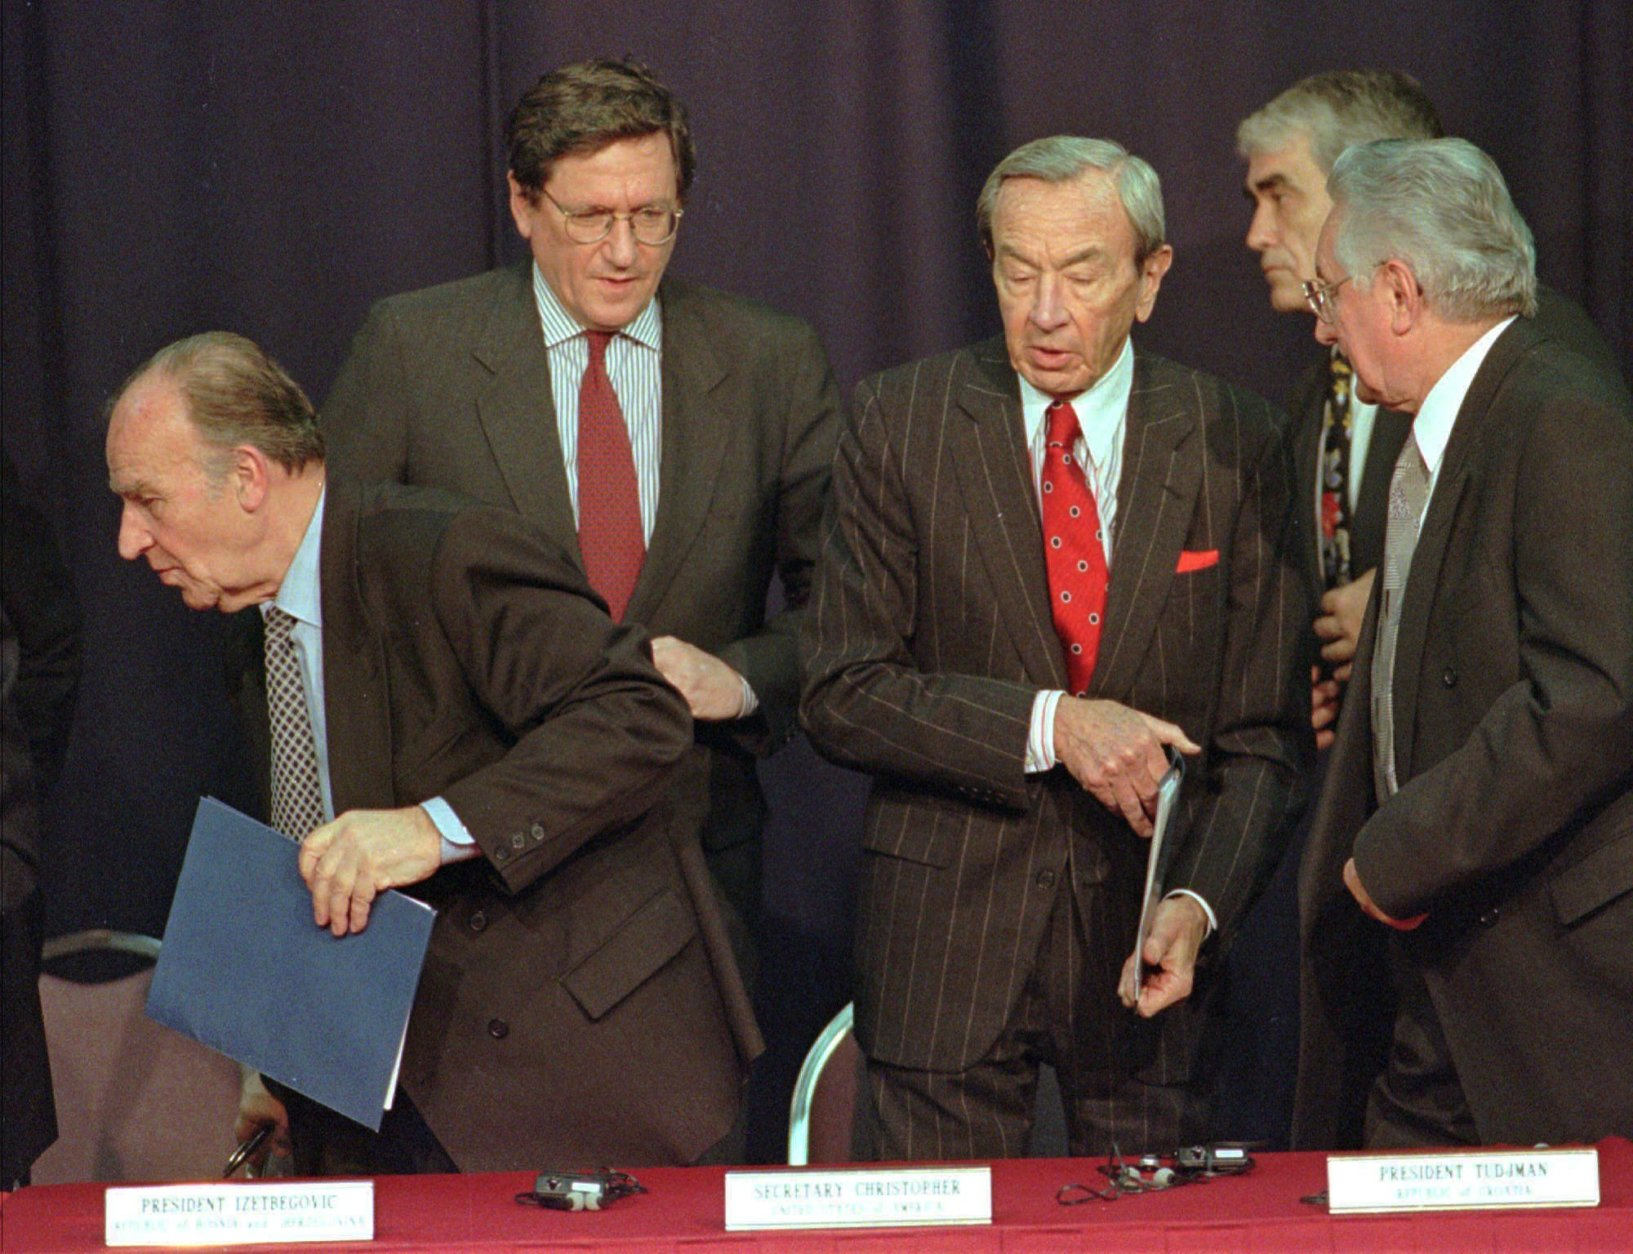 Secretary of State Warren Christopher, right center, steps between Bosnia President Alija Izetbegovic, left, and Croatian President Franjo Tudjman after they signed an accord Friday, Nov. 10, 1995, at Wright-Patterson Air Force Base in Dayton, Ohio, that bolsters a Muslim-Croat alliance that is seen as a fundamental building block for a Bosnia peace agreement. At left rear is U.S. negotiator Richard Holbrooke. (AP Photo/Al Behrman)